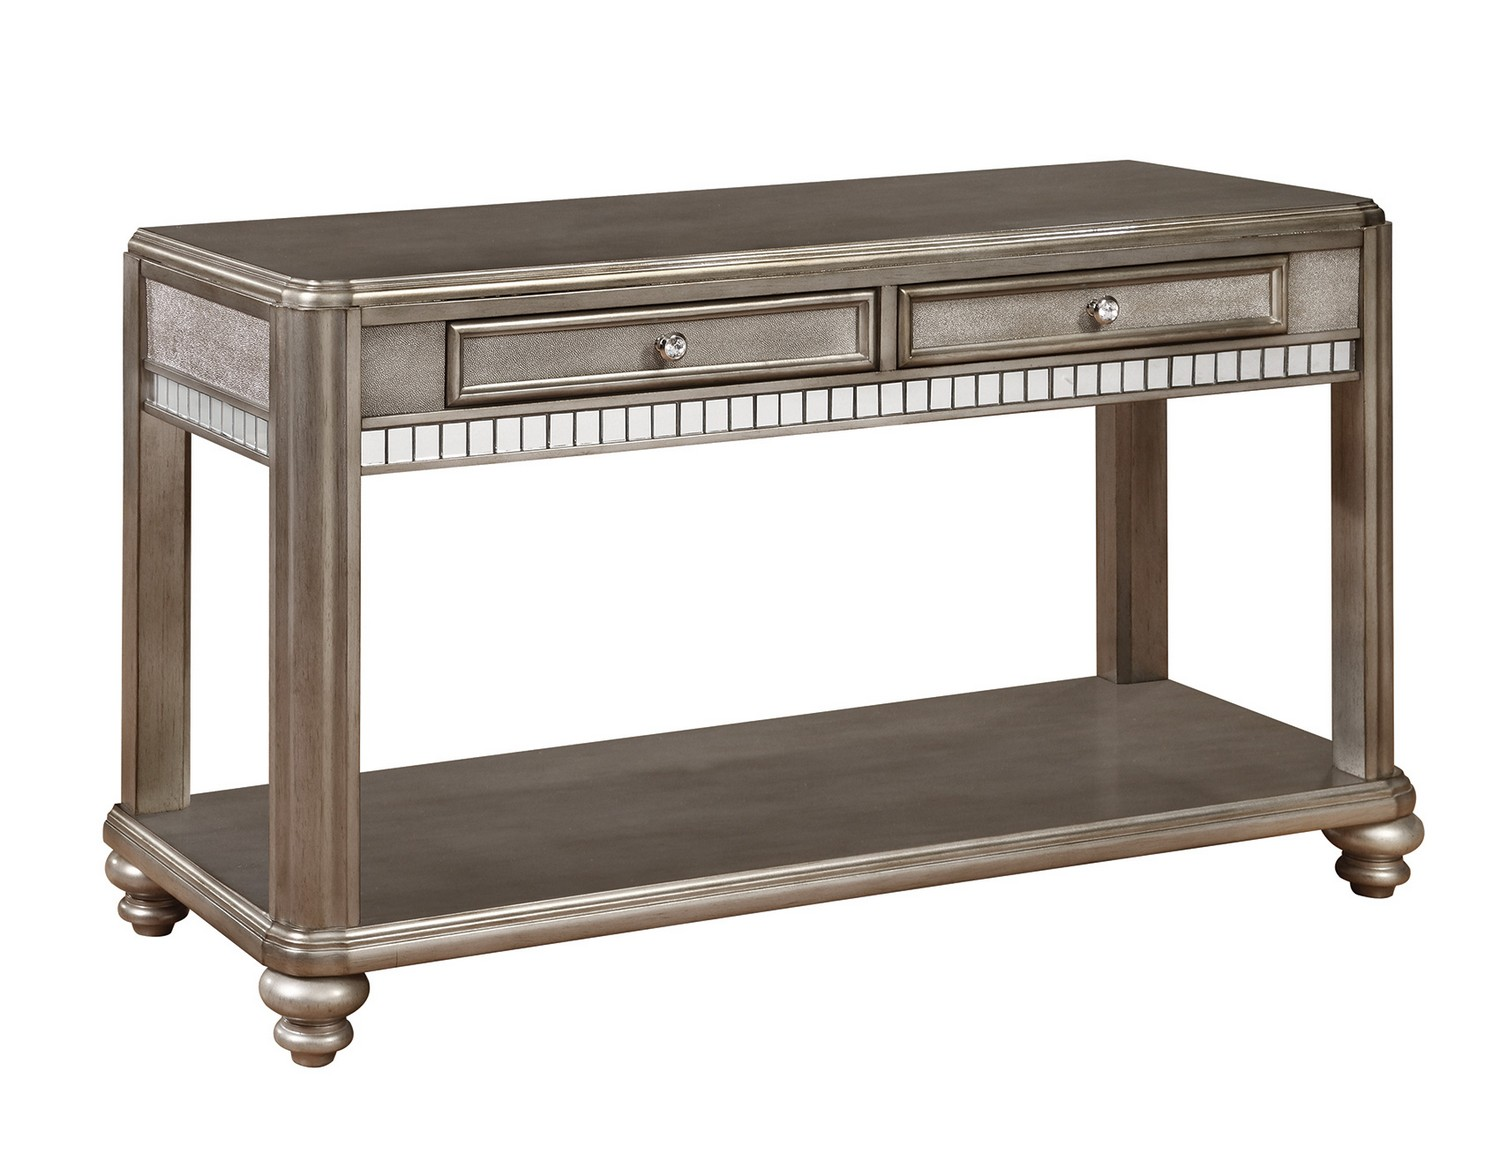 Coaster 704619 Sofa Table - Metallic Platinum